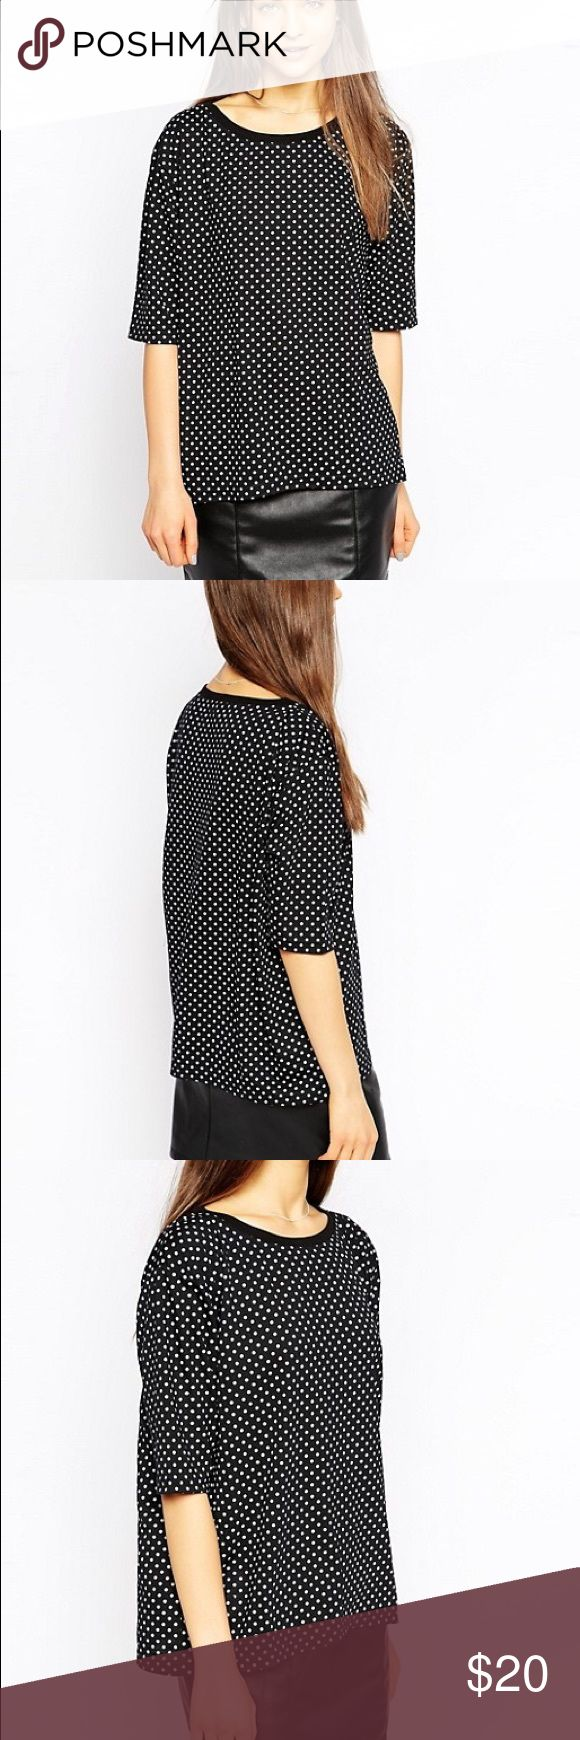 Tired of Tokyo Polka Dot Top! ⚪️⚫️⚪️⚫️ Adorable size Small top from Tired of Tokyo / ASOS. Out of stock everywhere!! Wide neck with elbow-length sleeves. Will also fit a size Medium, but with a different look-- falling to the waist and not as baggy. This top is in great condition. Pictures don't show that the polka dots look more silkscreened and not so uniform. A very cool cut and print for a super mod hipster look. Or Yayoi Kusama Halloween costume. Asos Tops Tees - Short Sleeve